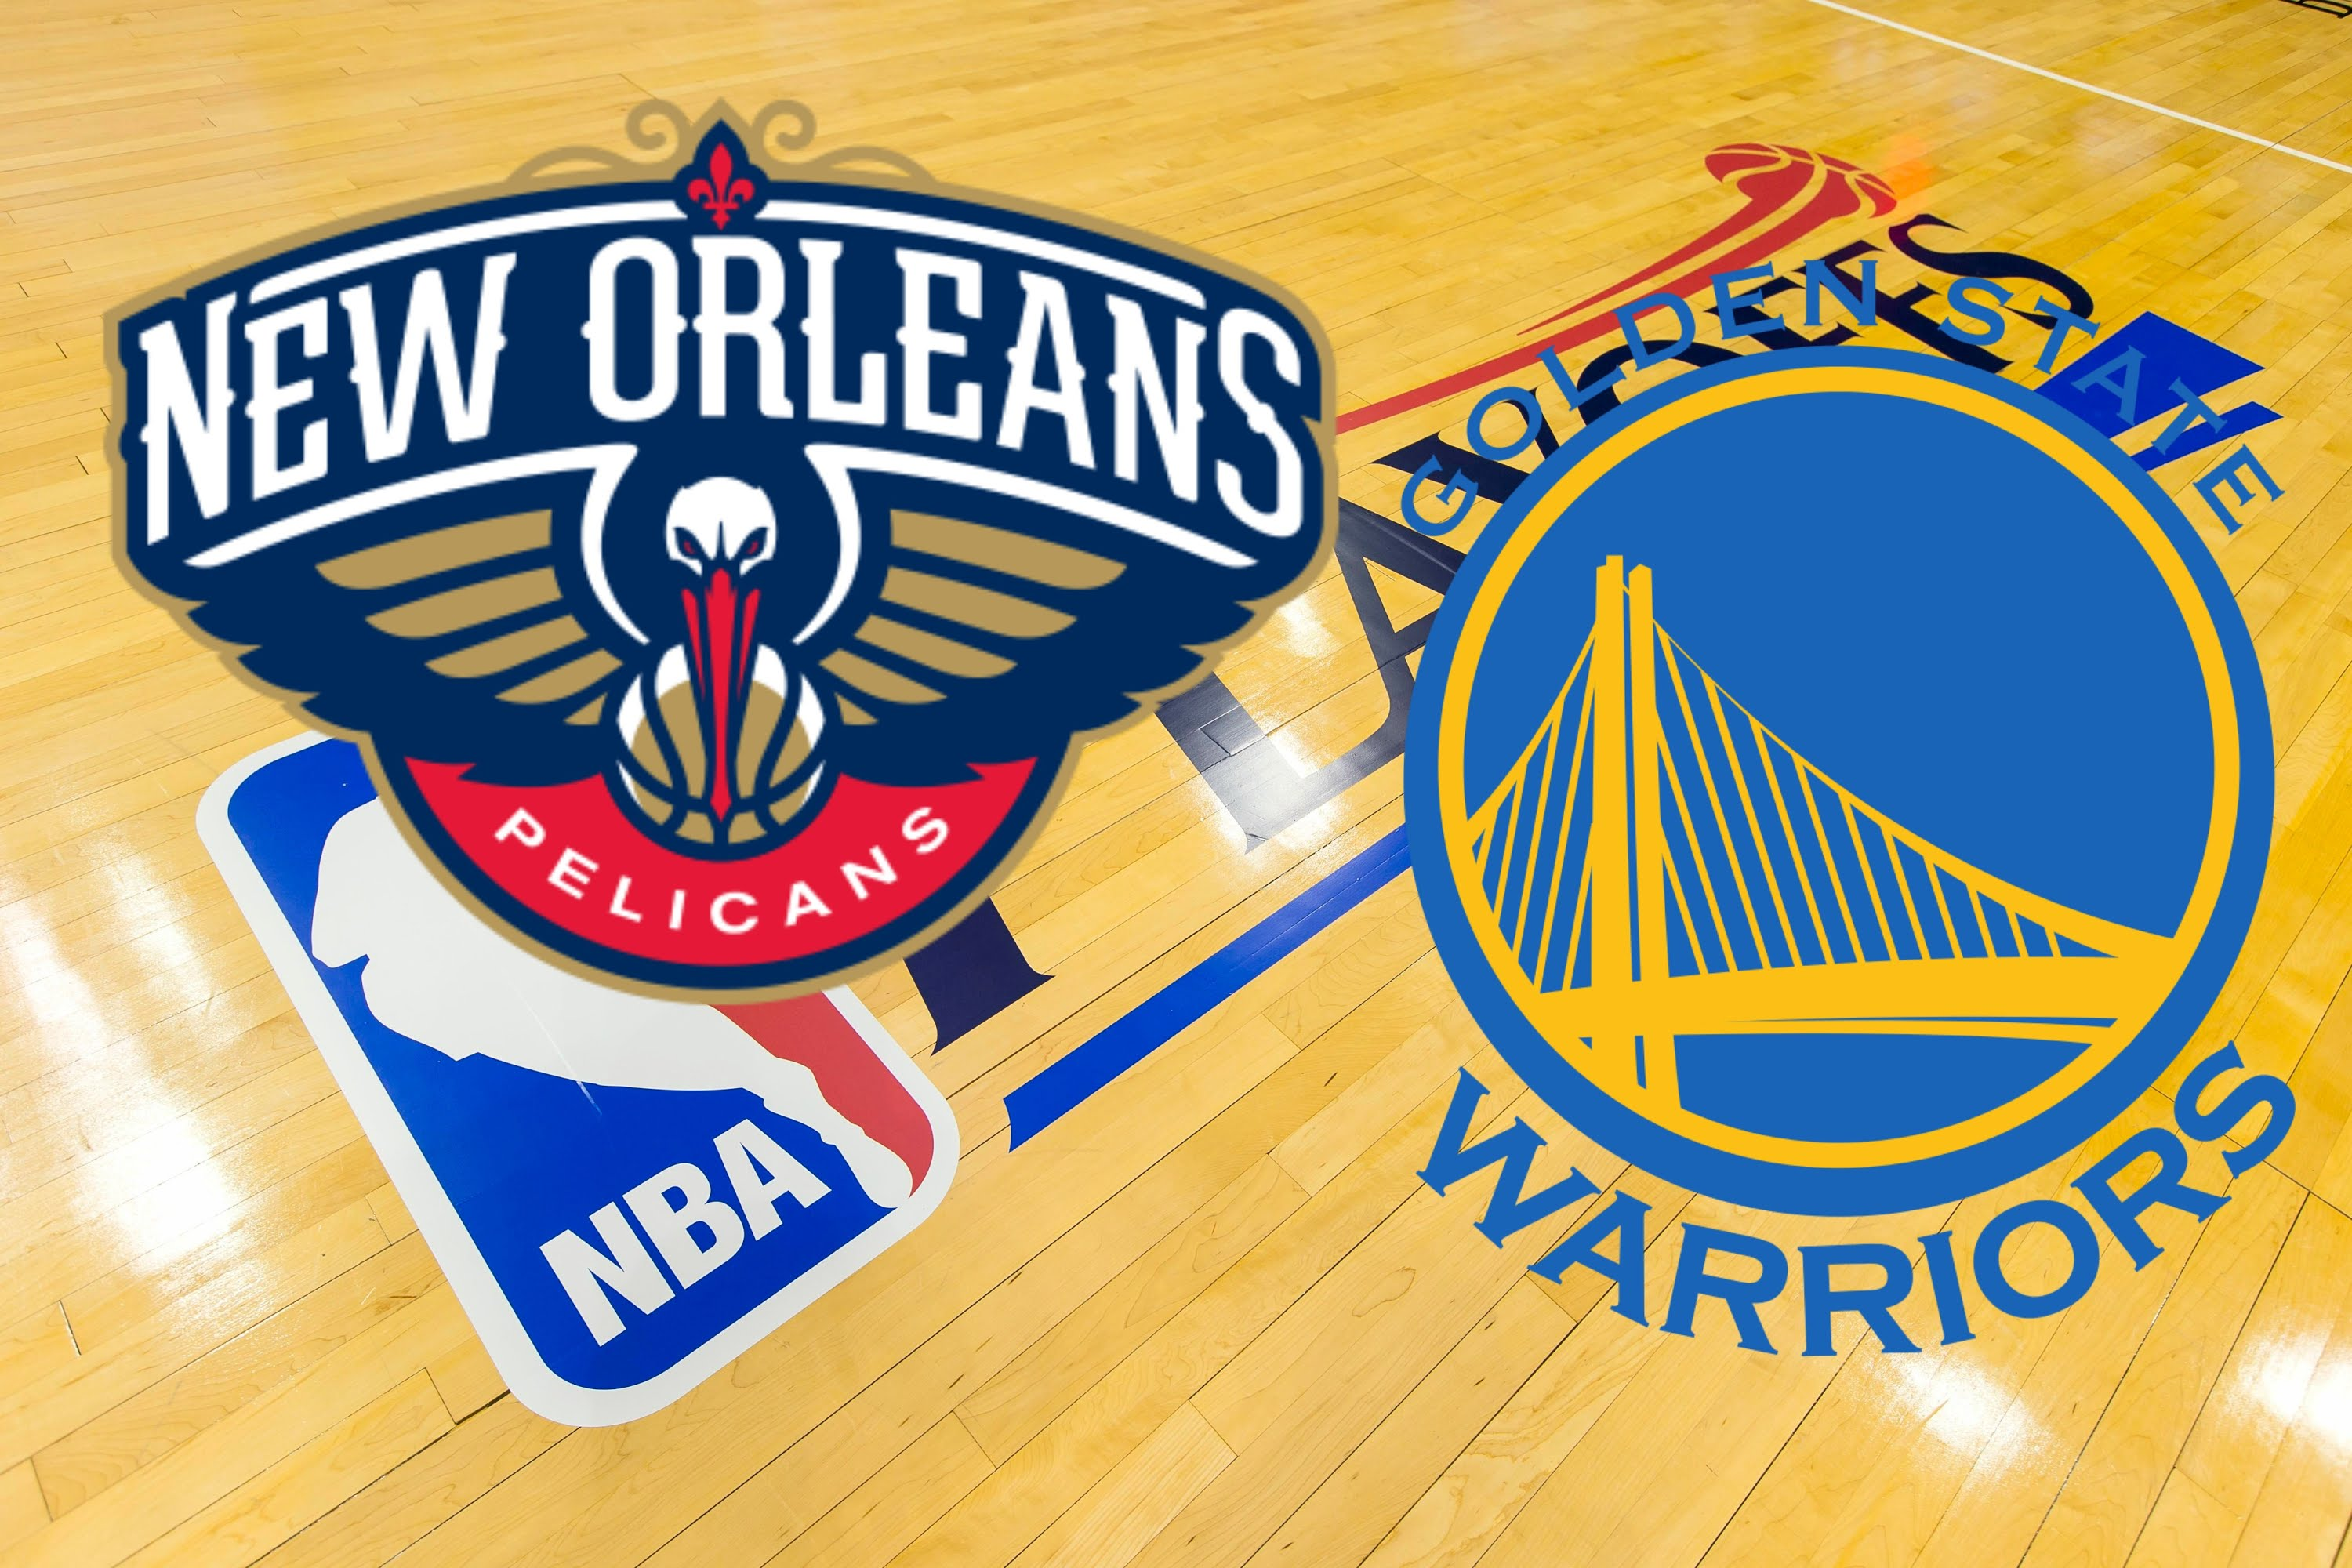 Golden State Warriors vs New Orleans Pelicans